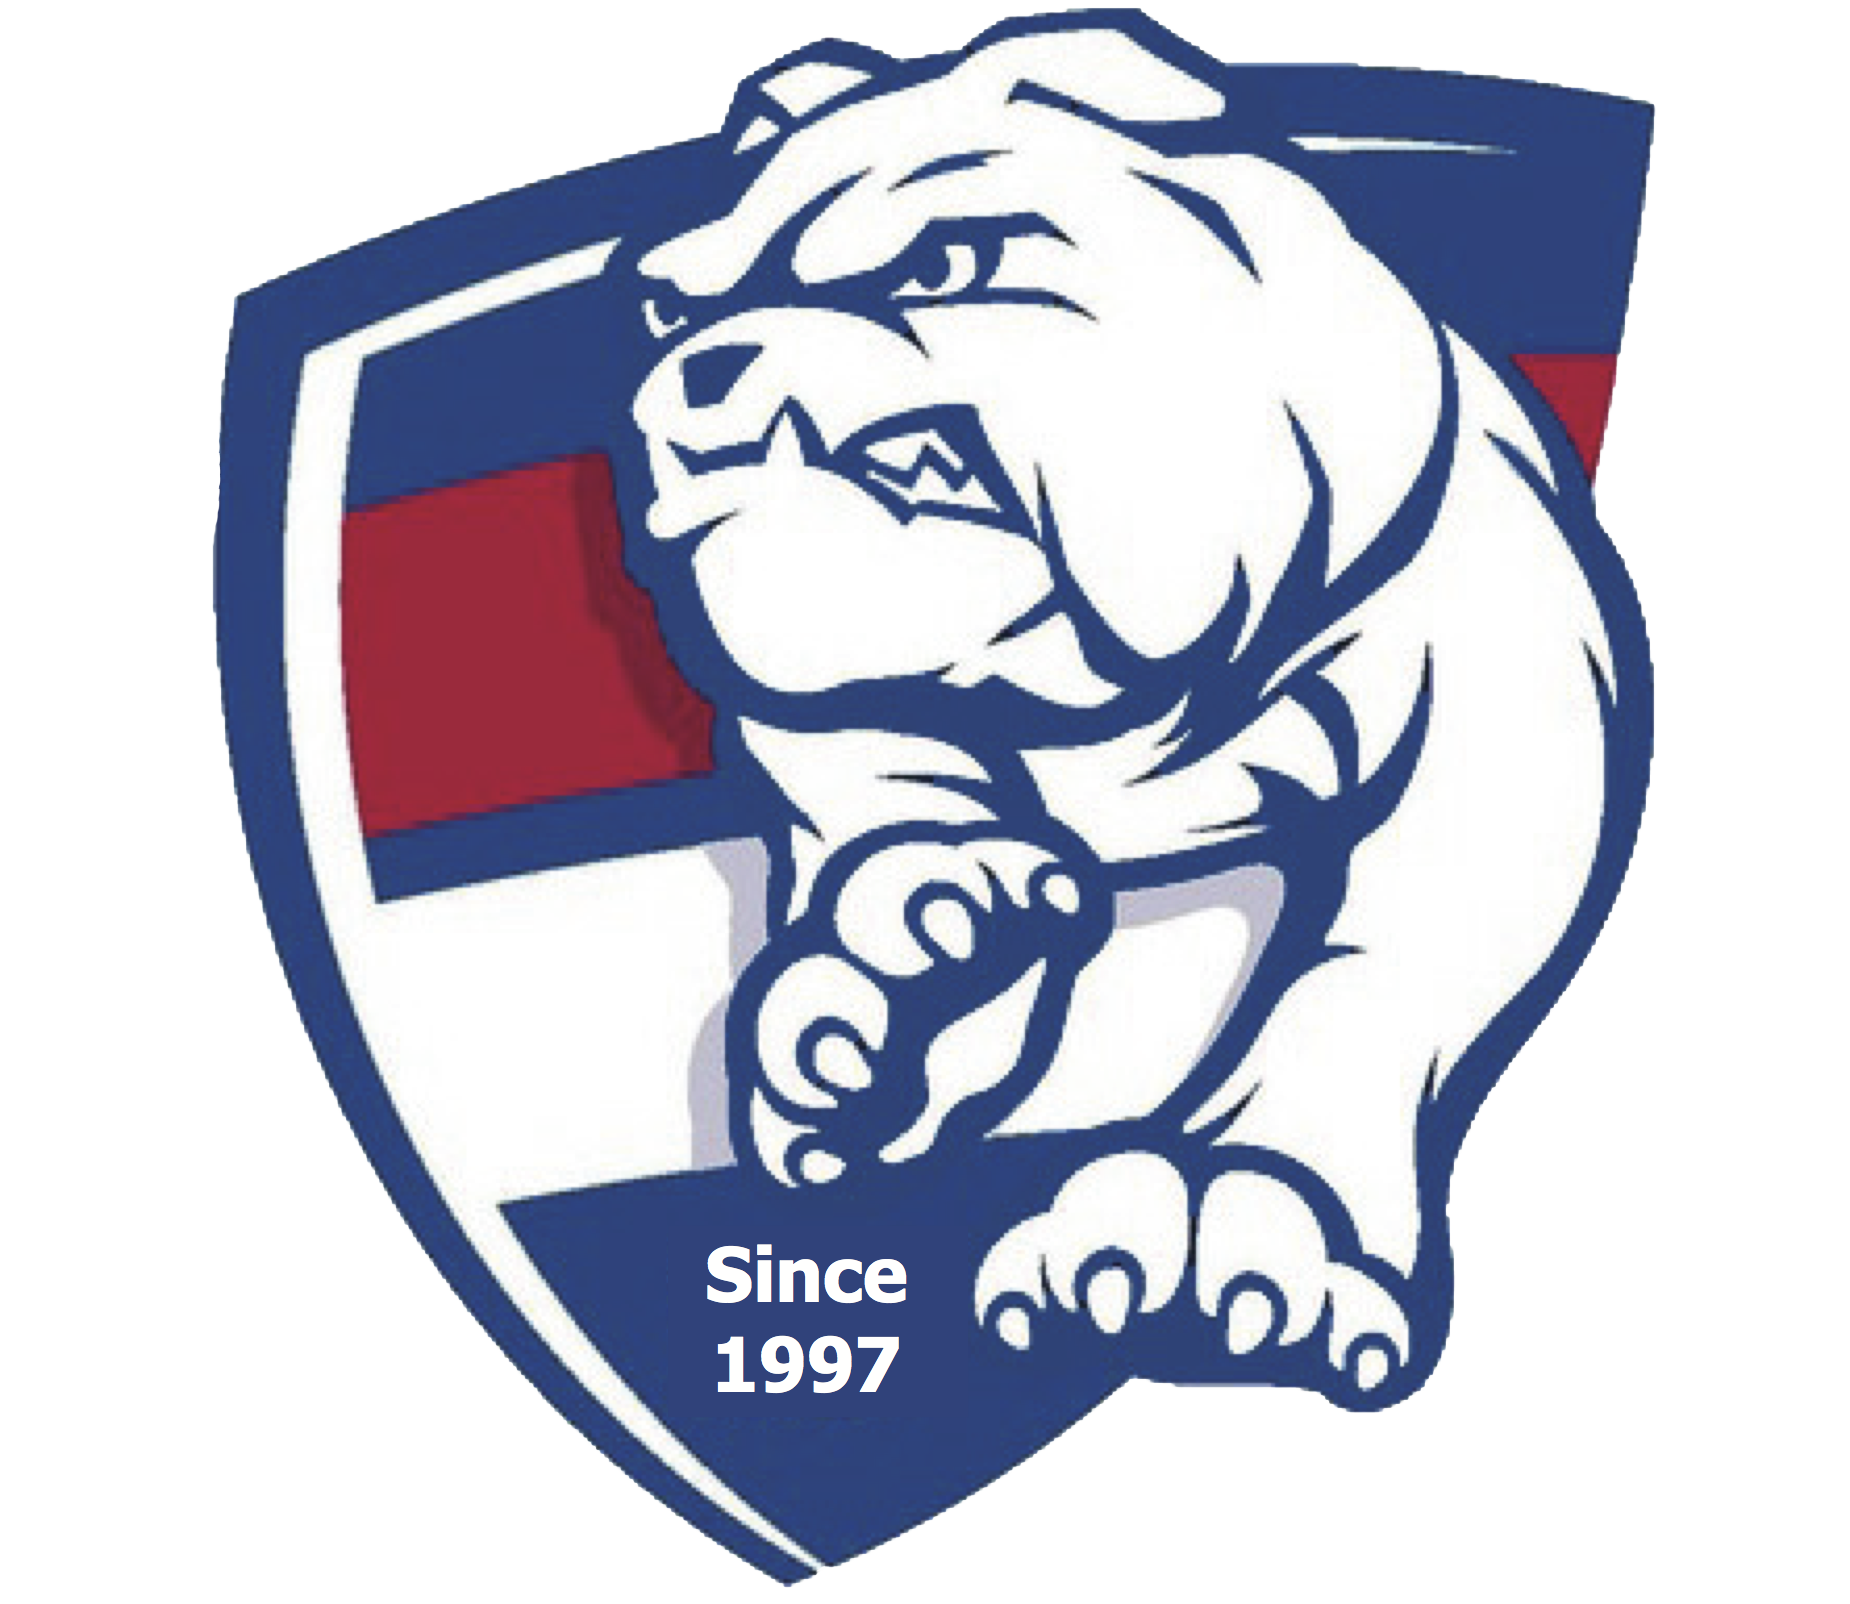 Bulldog playing football clipart graphic black and white download Denver Bulldogs | graphic black and white download